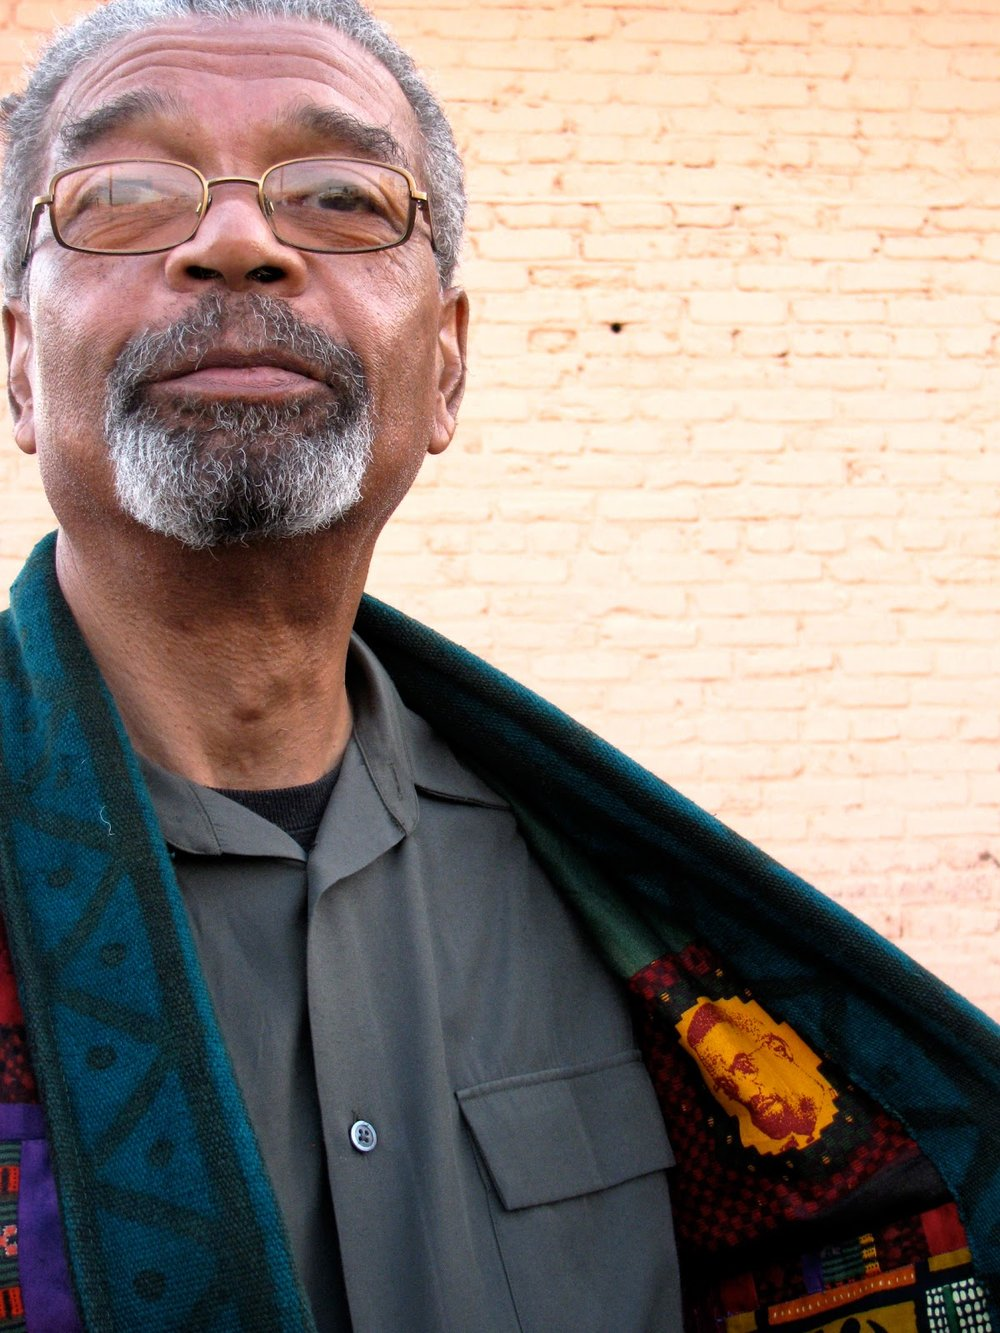 2013, Nelson Stevens (born 1938) Nelson Stevens is a native of Brooklyn, a painter and print maker, whose signature works are complex stylized figurative paintings, drawings, murals and prints that focus on his African-American culture, especially his interest in Jazz.